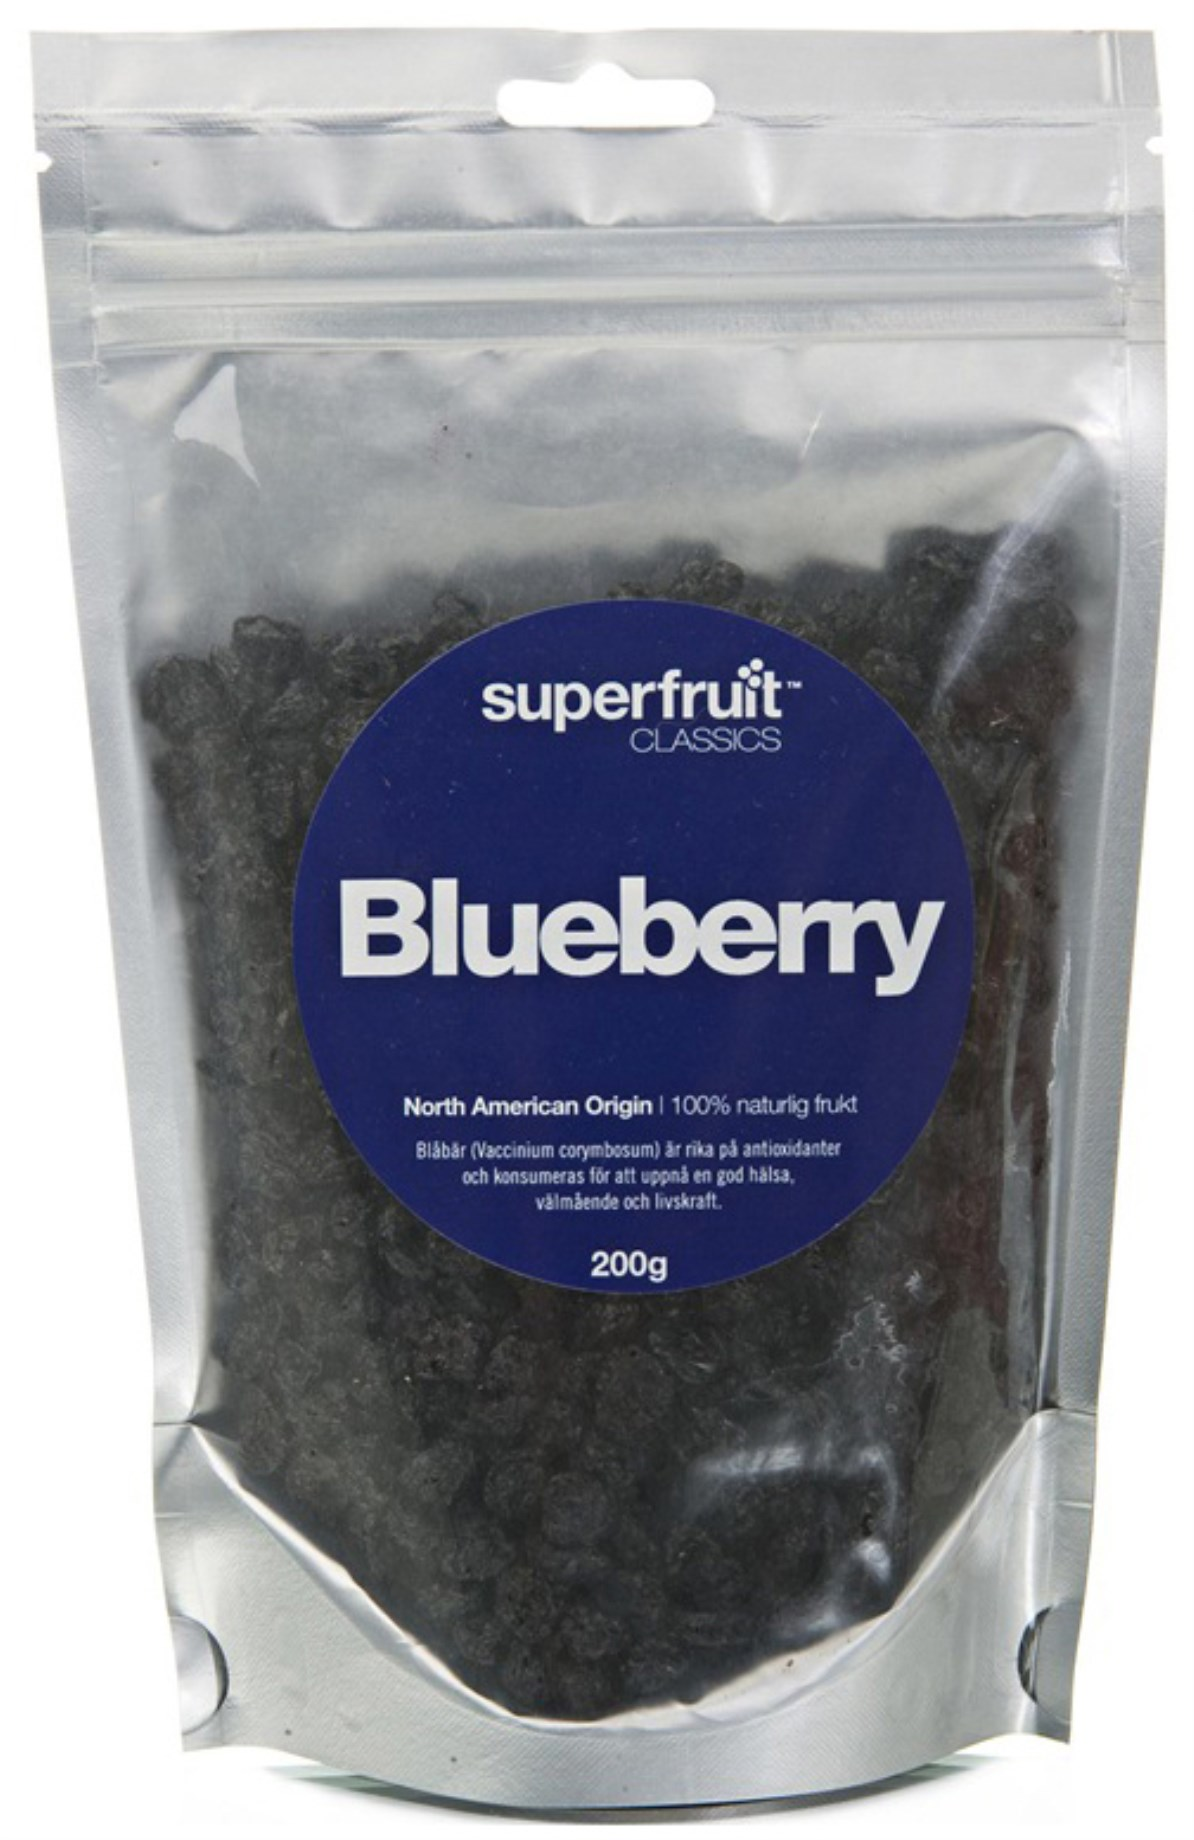 Superfruit Blueberry,  - Superfruit